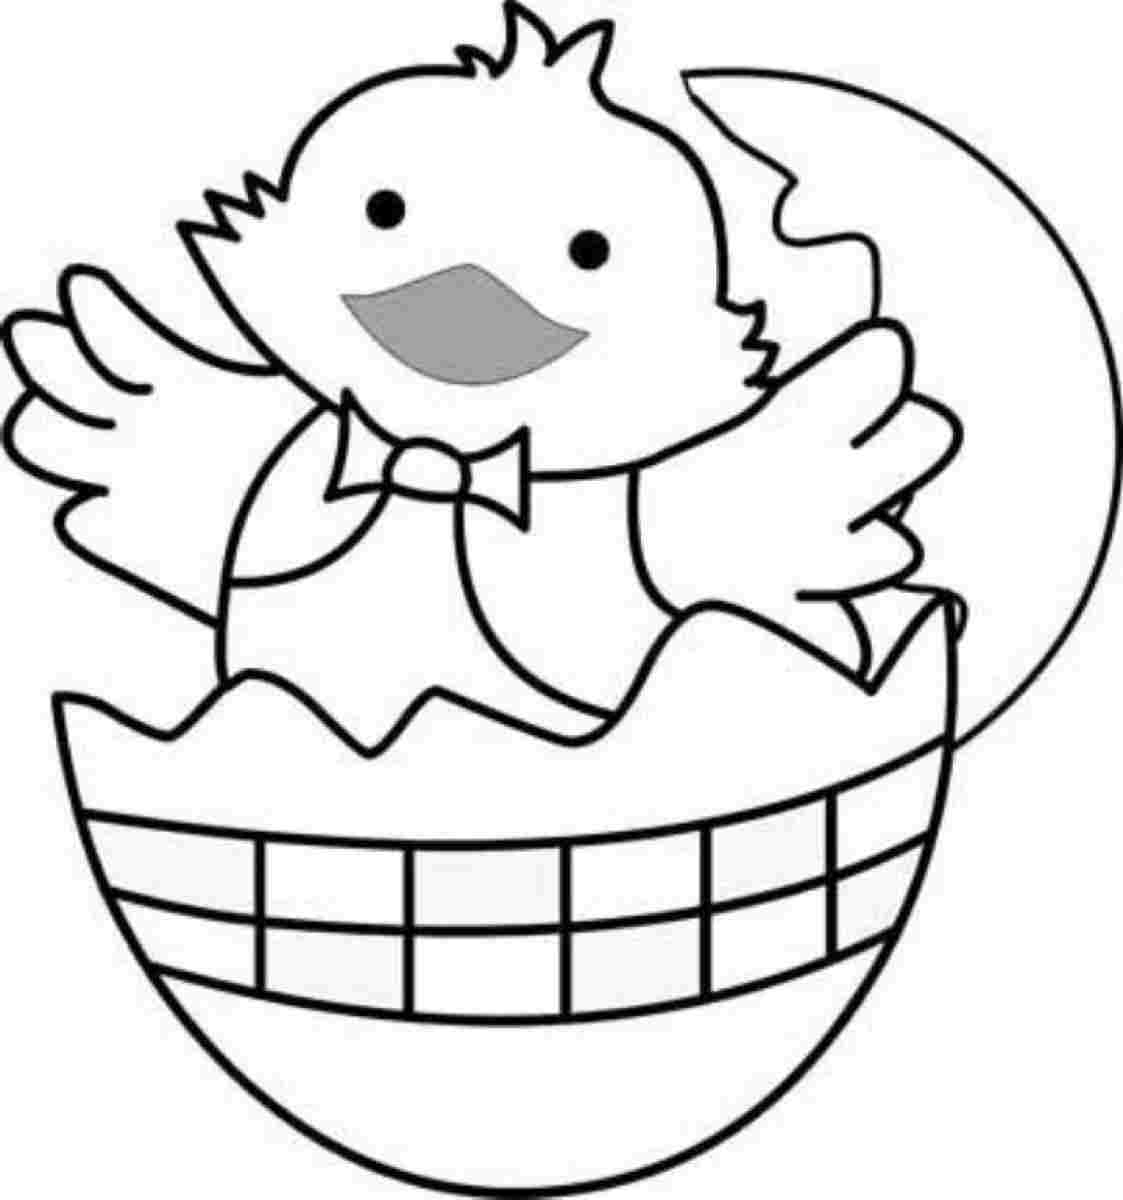 Free Easter Coloring Pages For Kindergarten : Easter chick colouring sheets printable for kindergarten